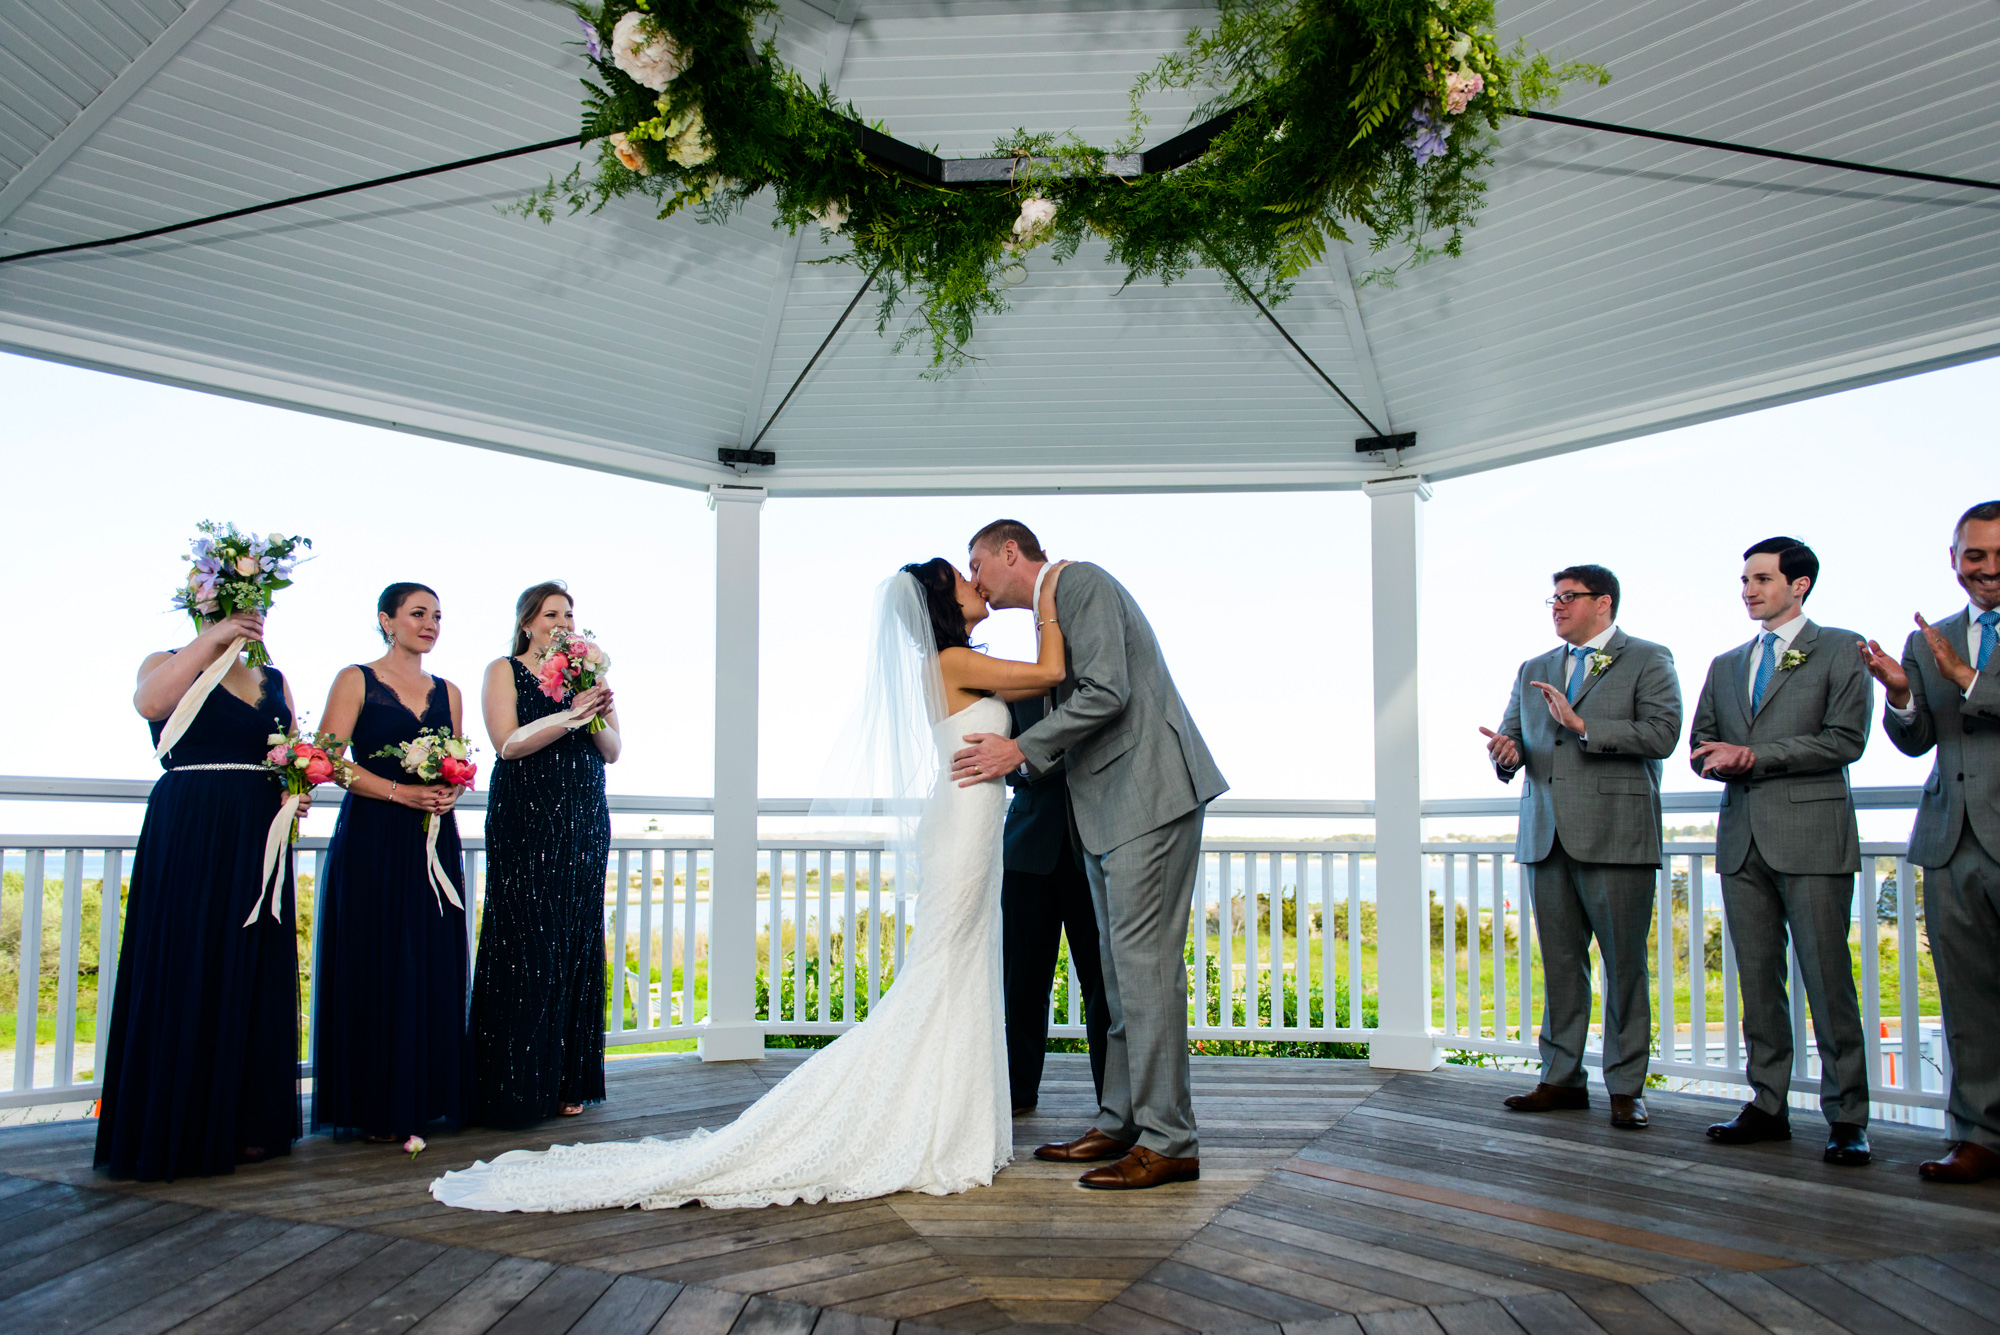 Cheers to the newlyweds at the Harbor View Hotel  photo by David Welch Photography